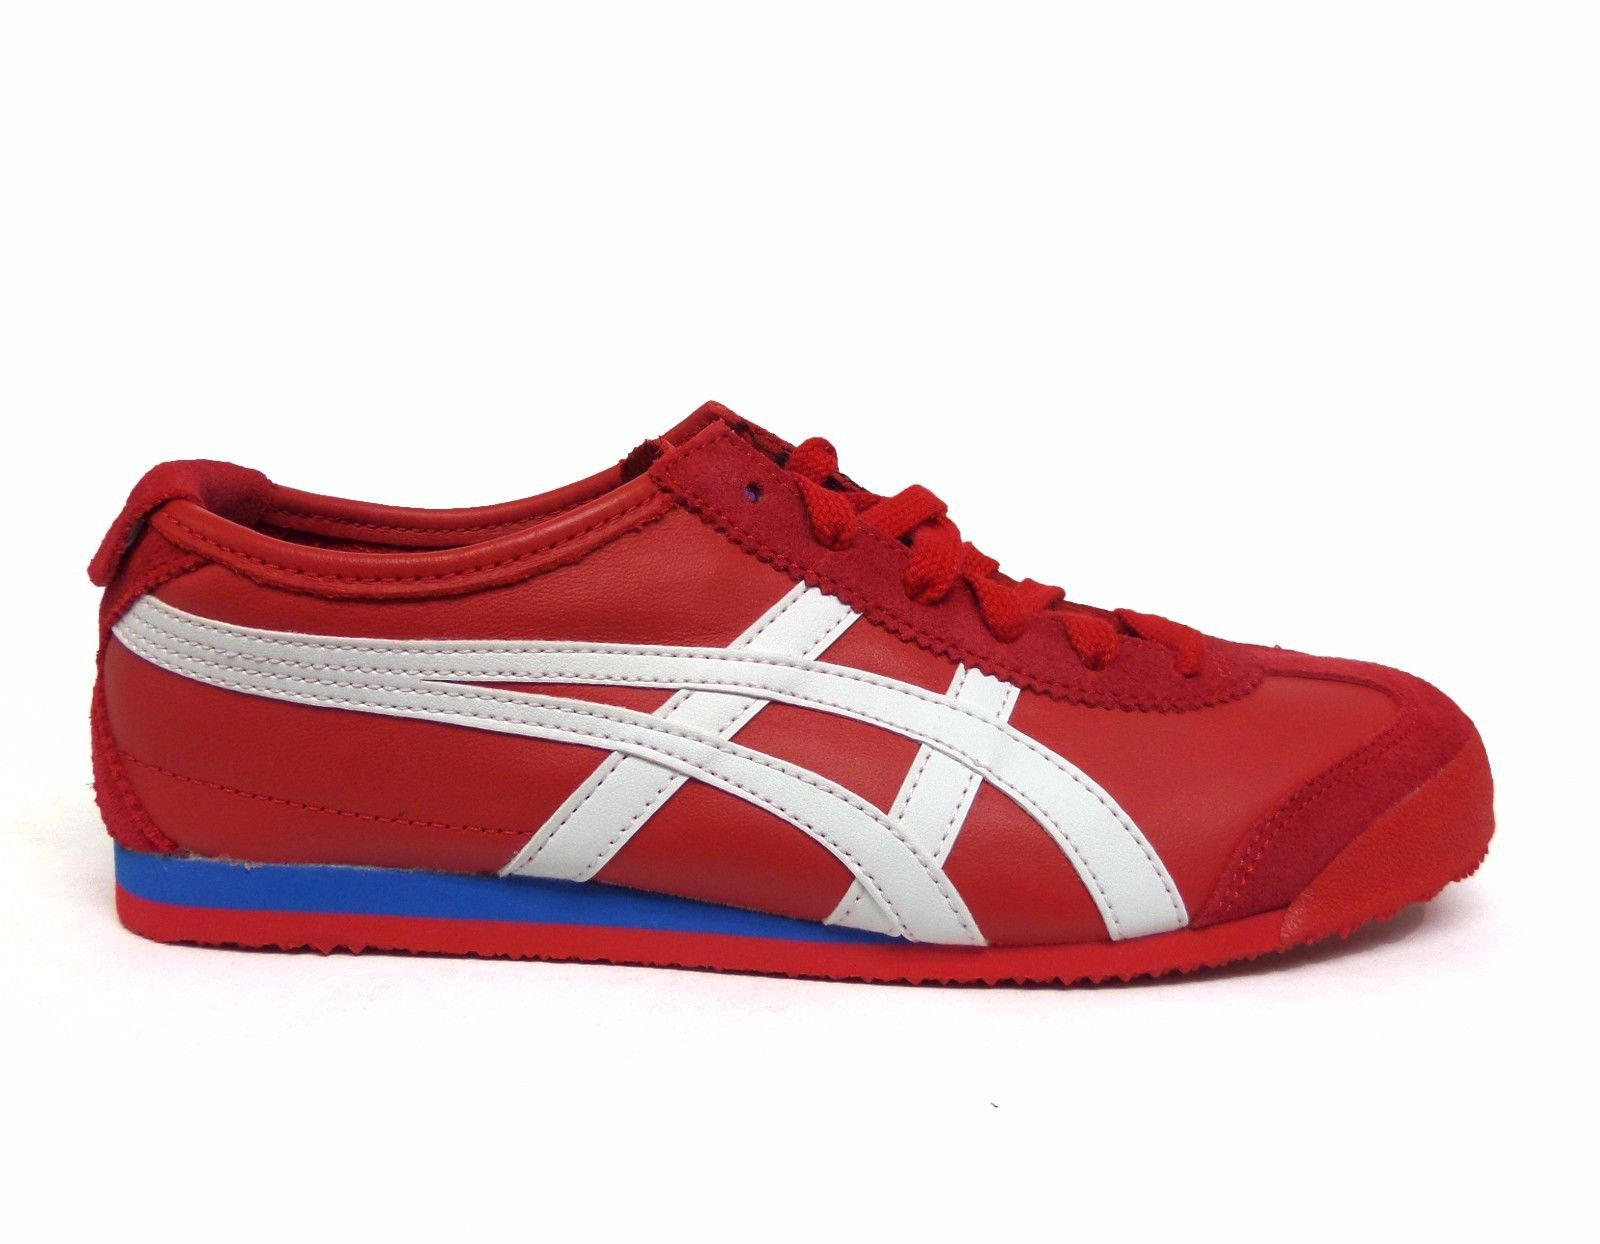 onitsuka tiger mexico 66 shoes size chart european medium india